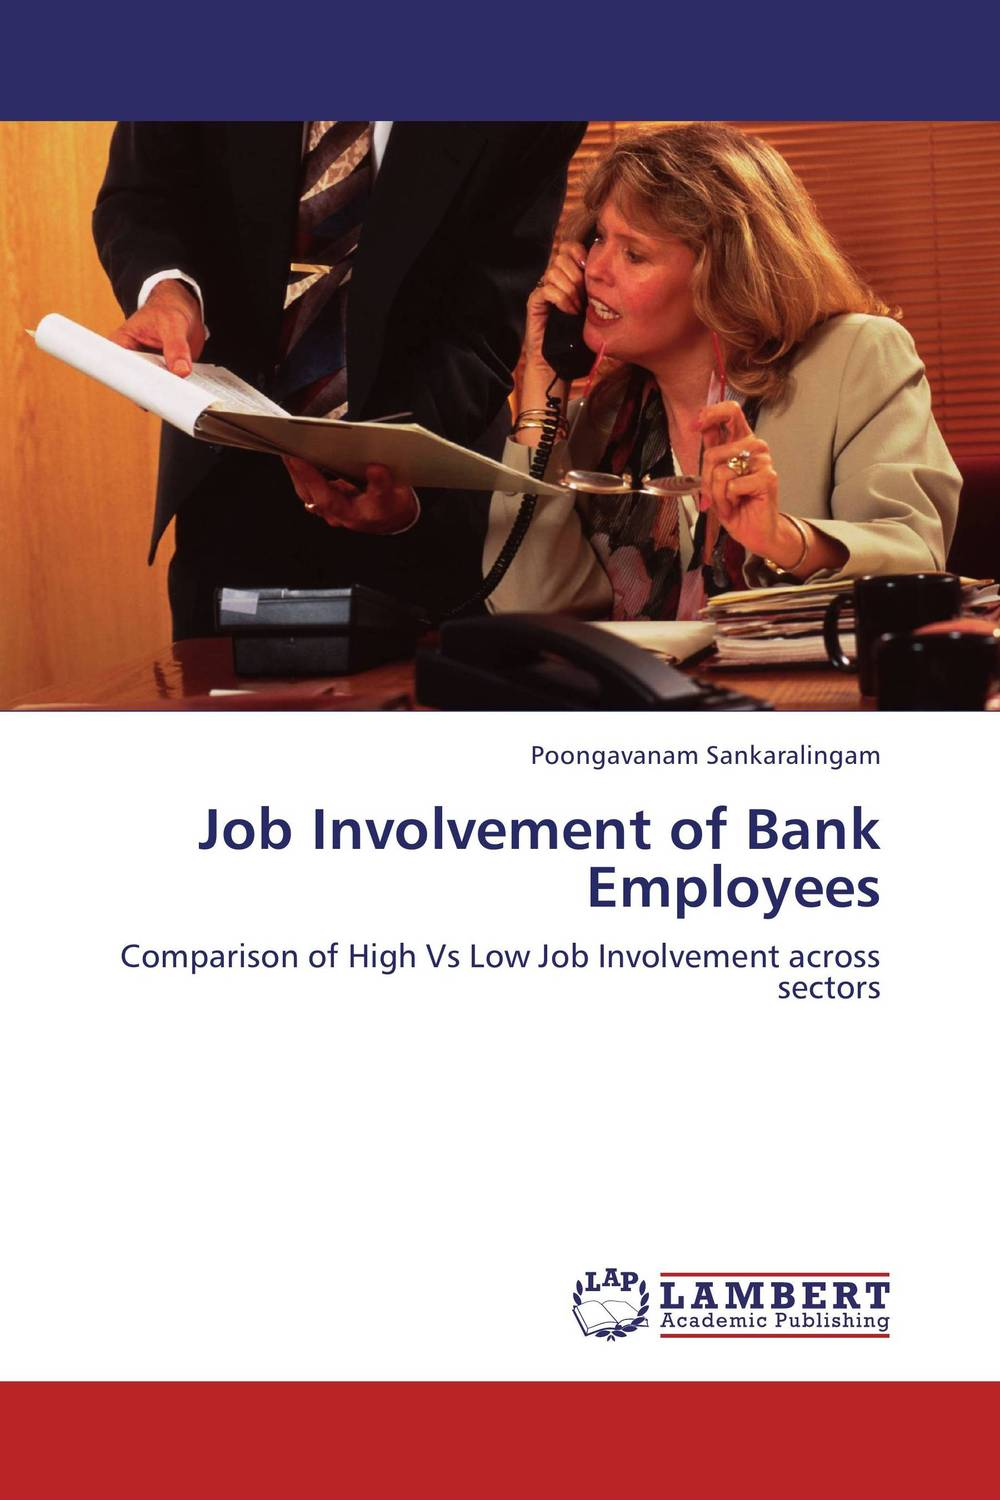 Job Involvement of Bank Employees